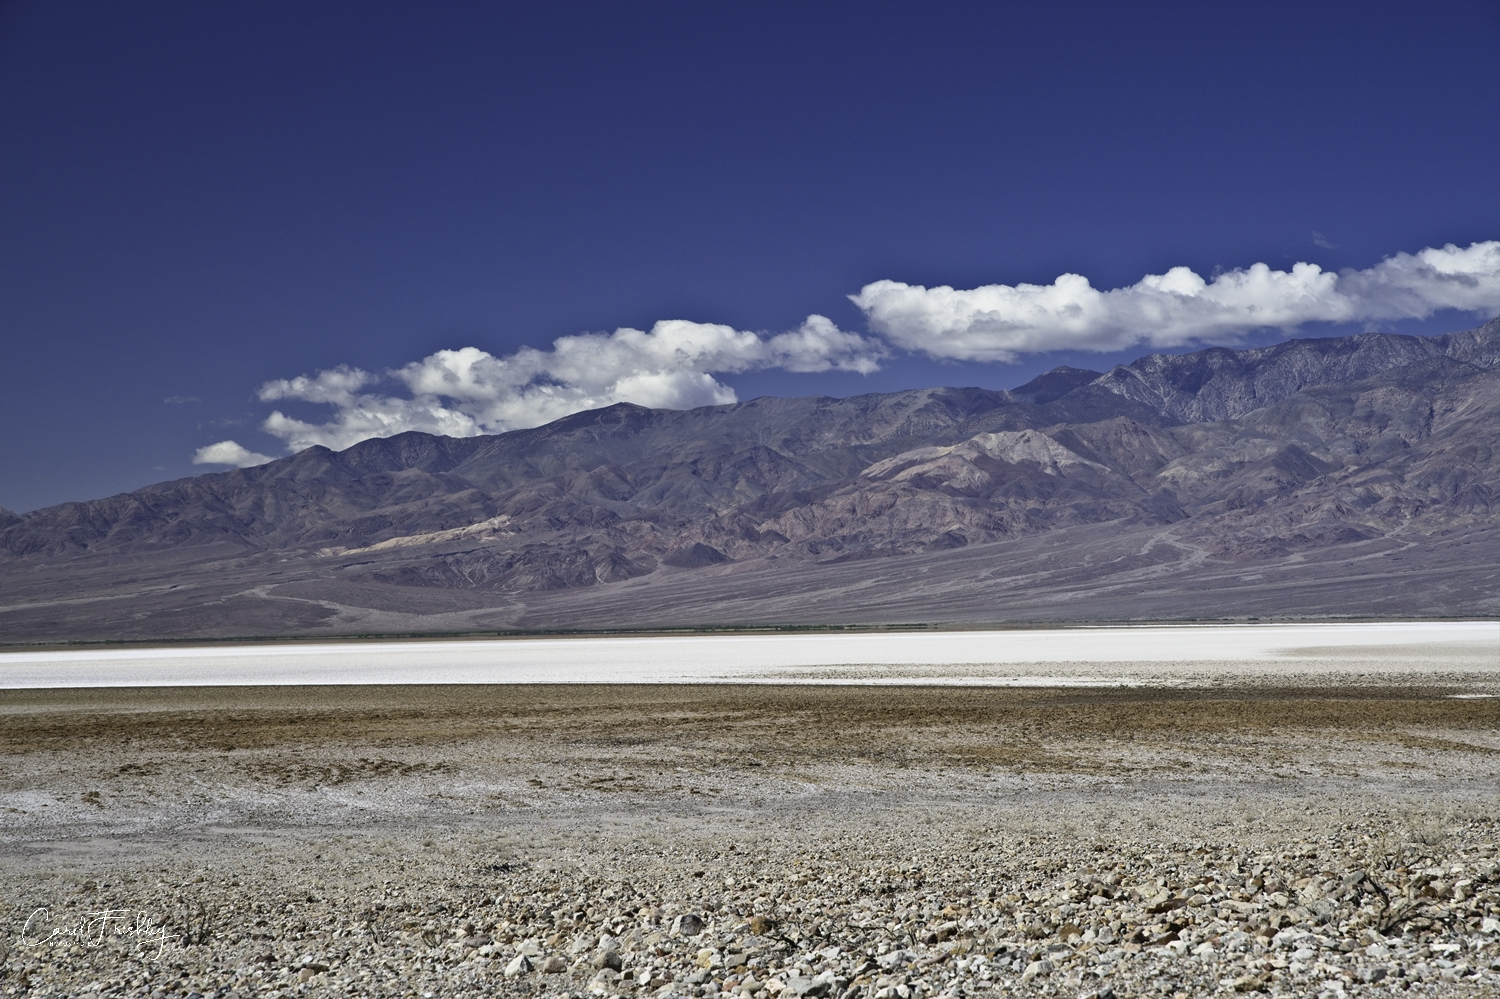 Panamint Mountain Range to the west of Badwater Basin.